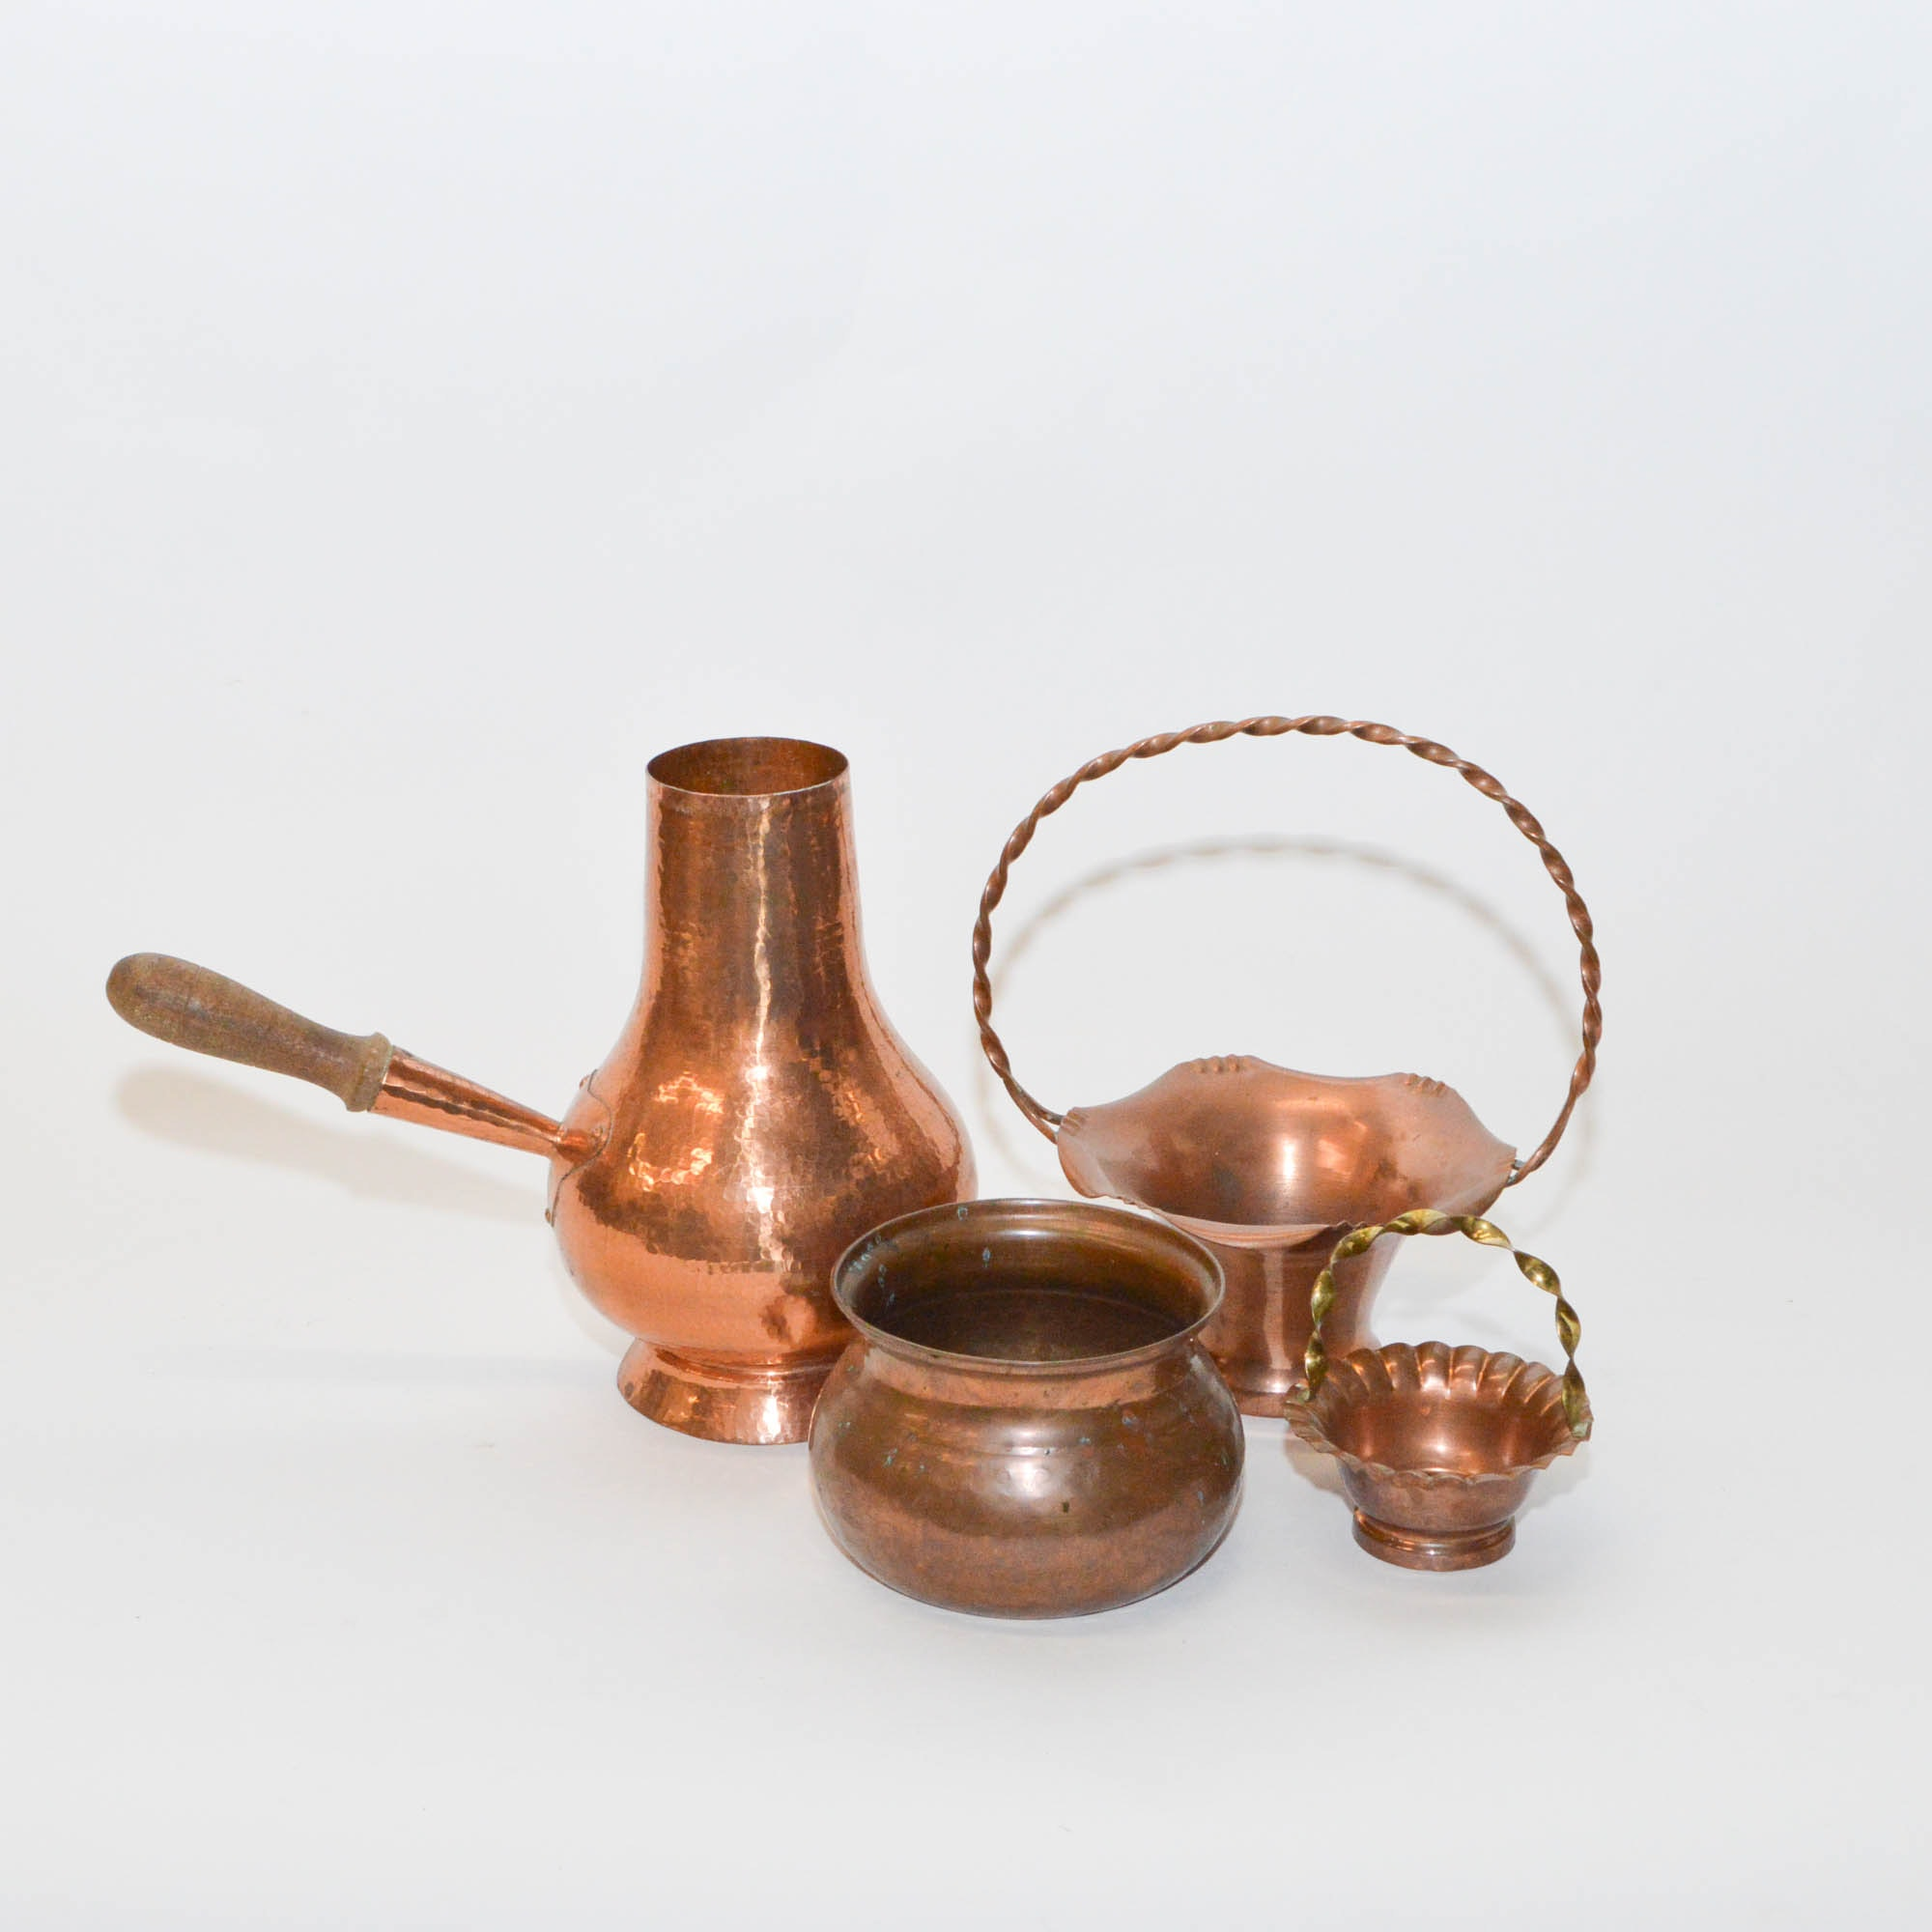 Assortment of Copper Bowls and Copper Chocolate Pot